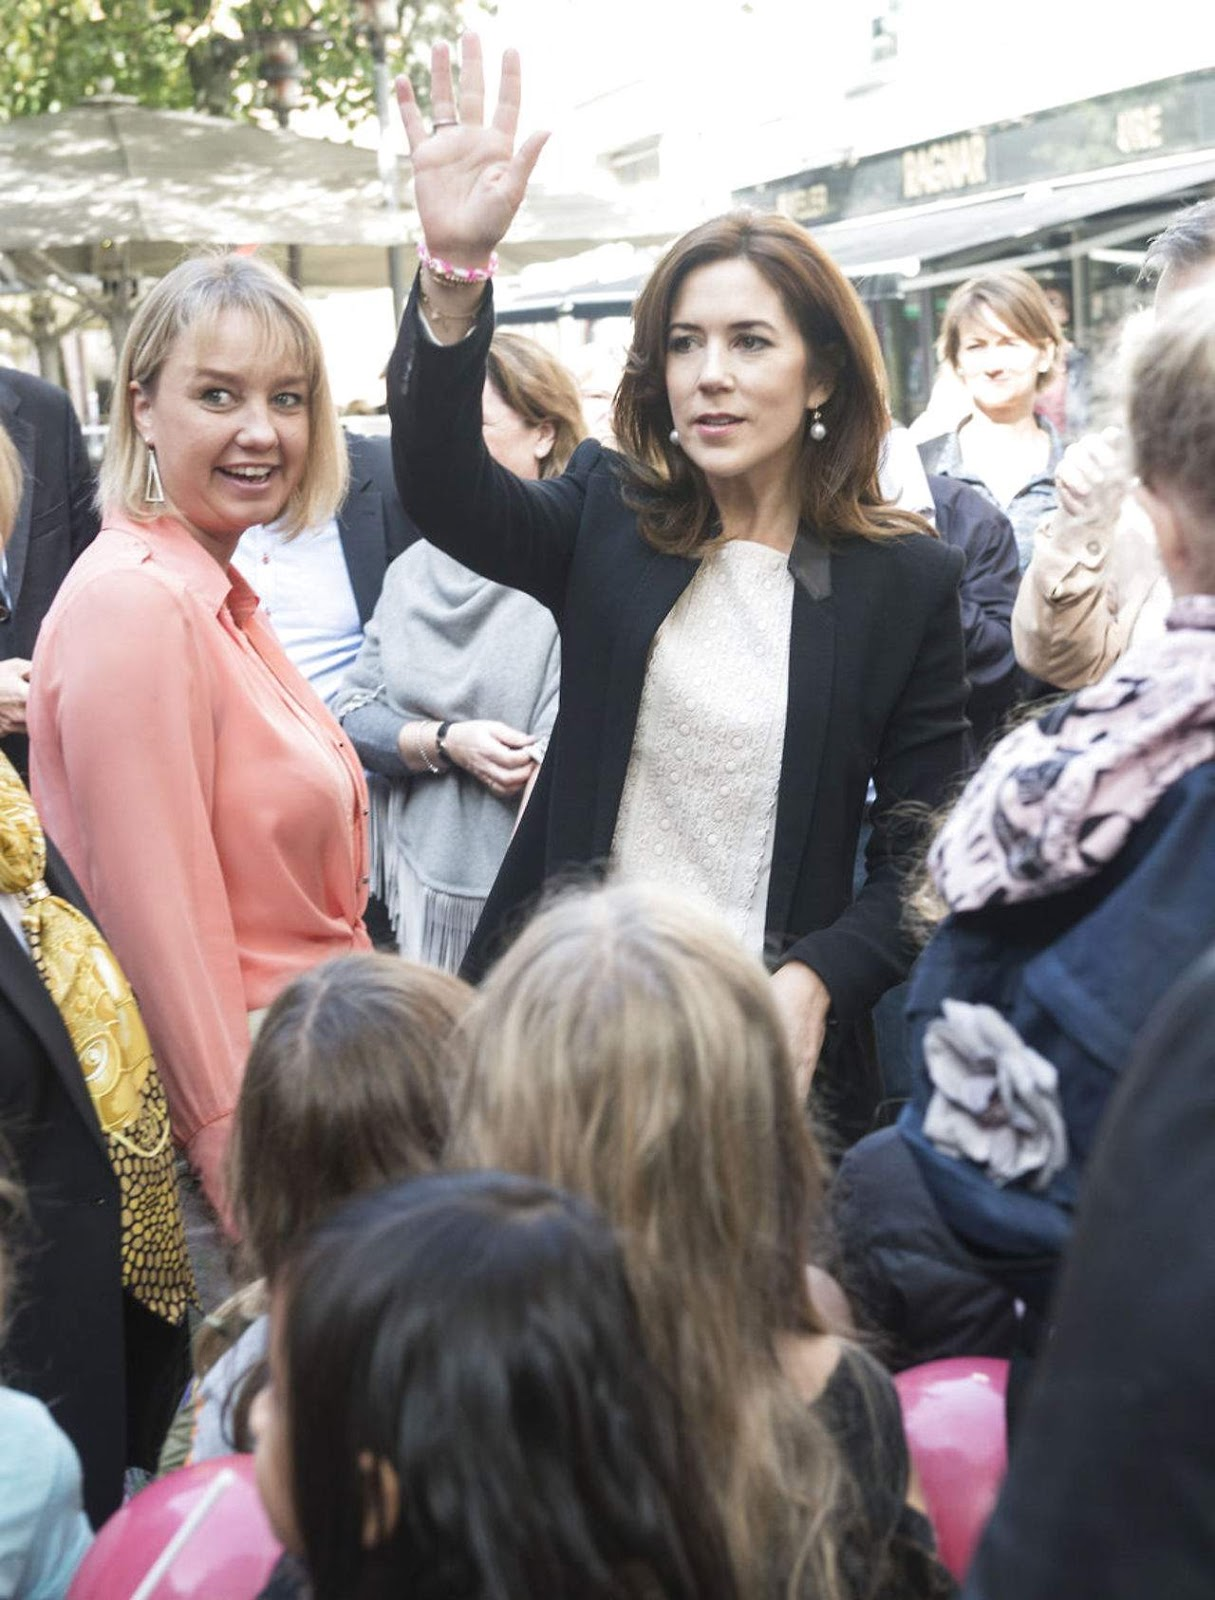 HRH Crown Princess Mary will open the conference together with Mayor of Culture and Urban Development Jane Jegind, Principal of University of Southern Denmark Henrik Dam, and Dr. Jan van Gils, President of the European Network for Child Friendly Cities, on: